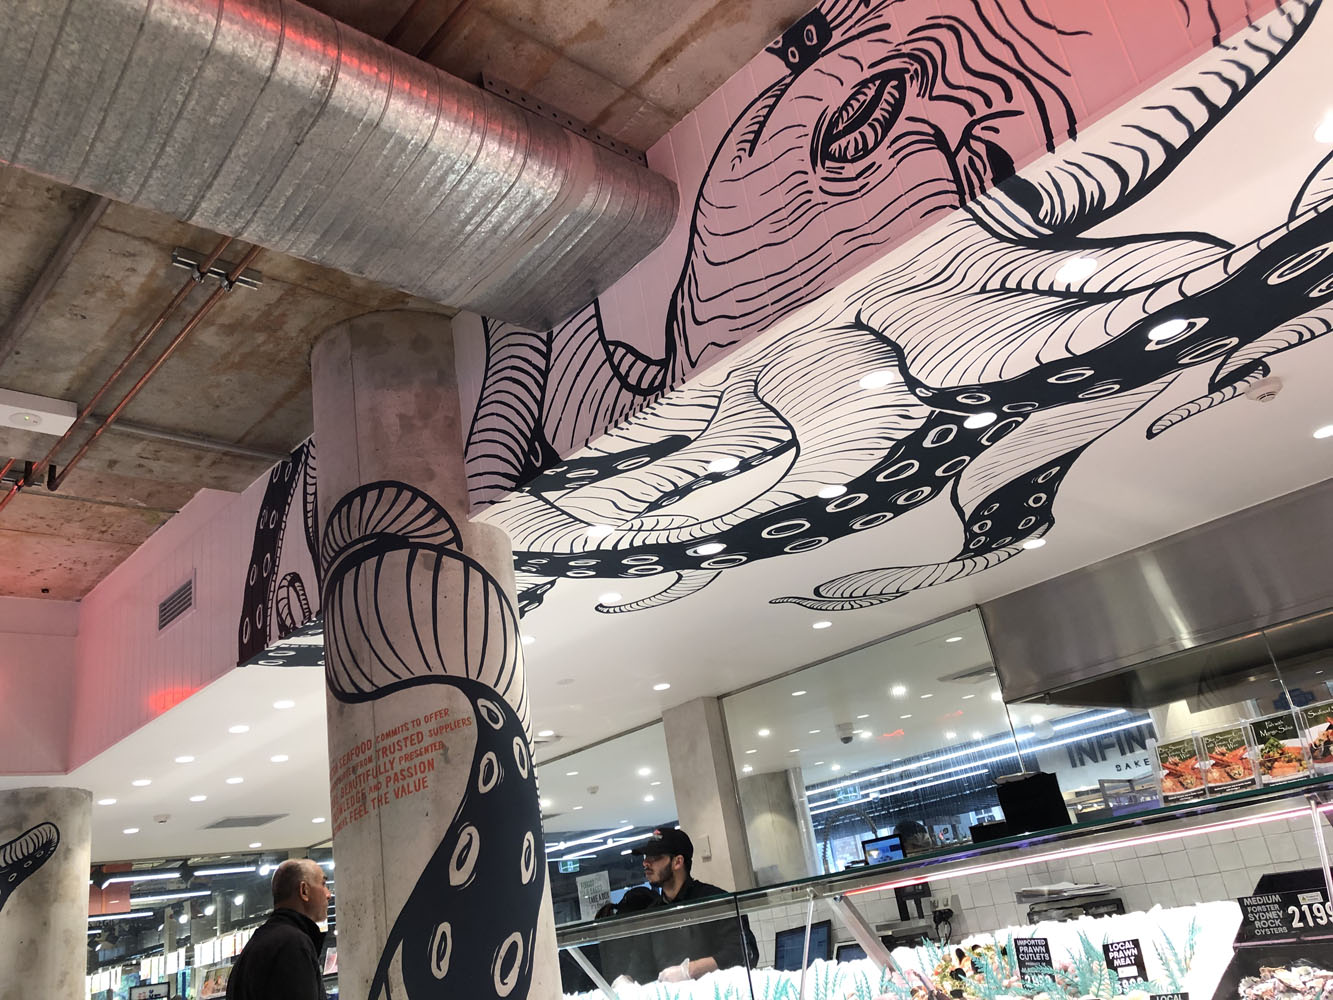 the-art-of-wall-sydney-fresh-seafood-harris-farm-lindfield-octopus-mural-5